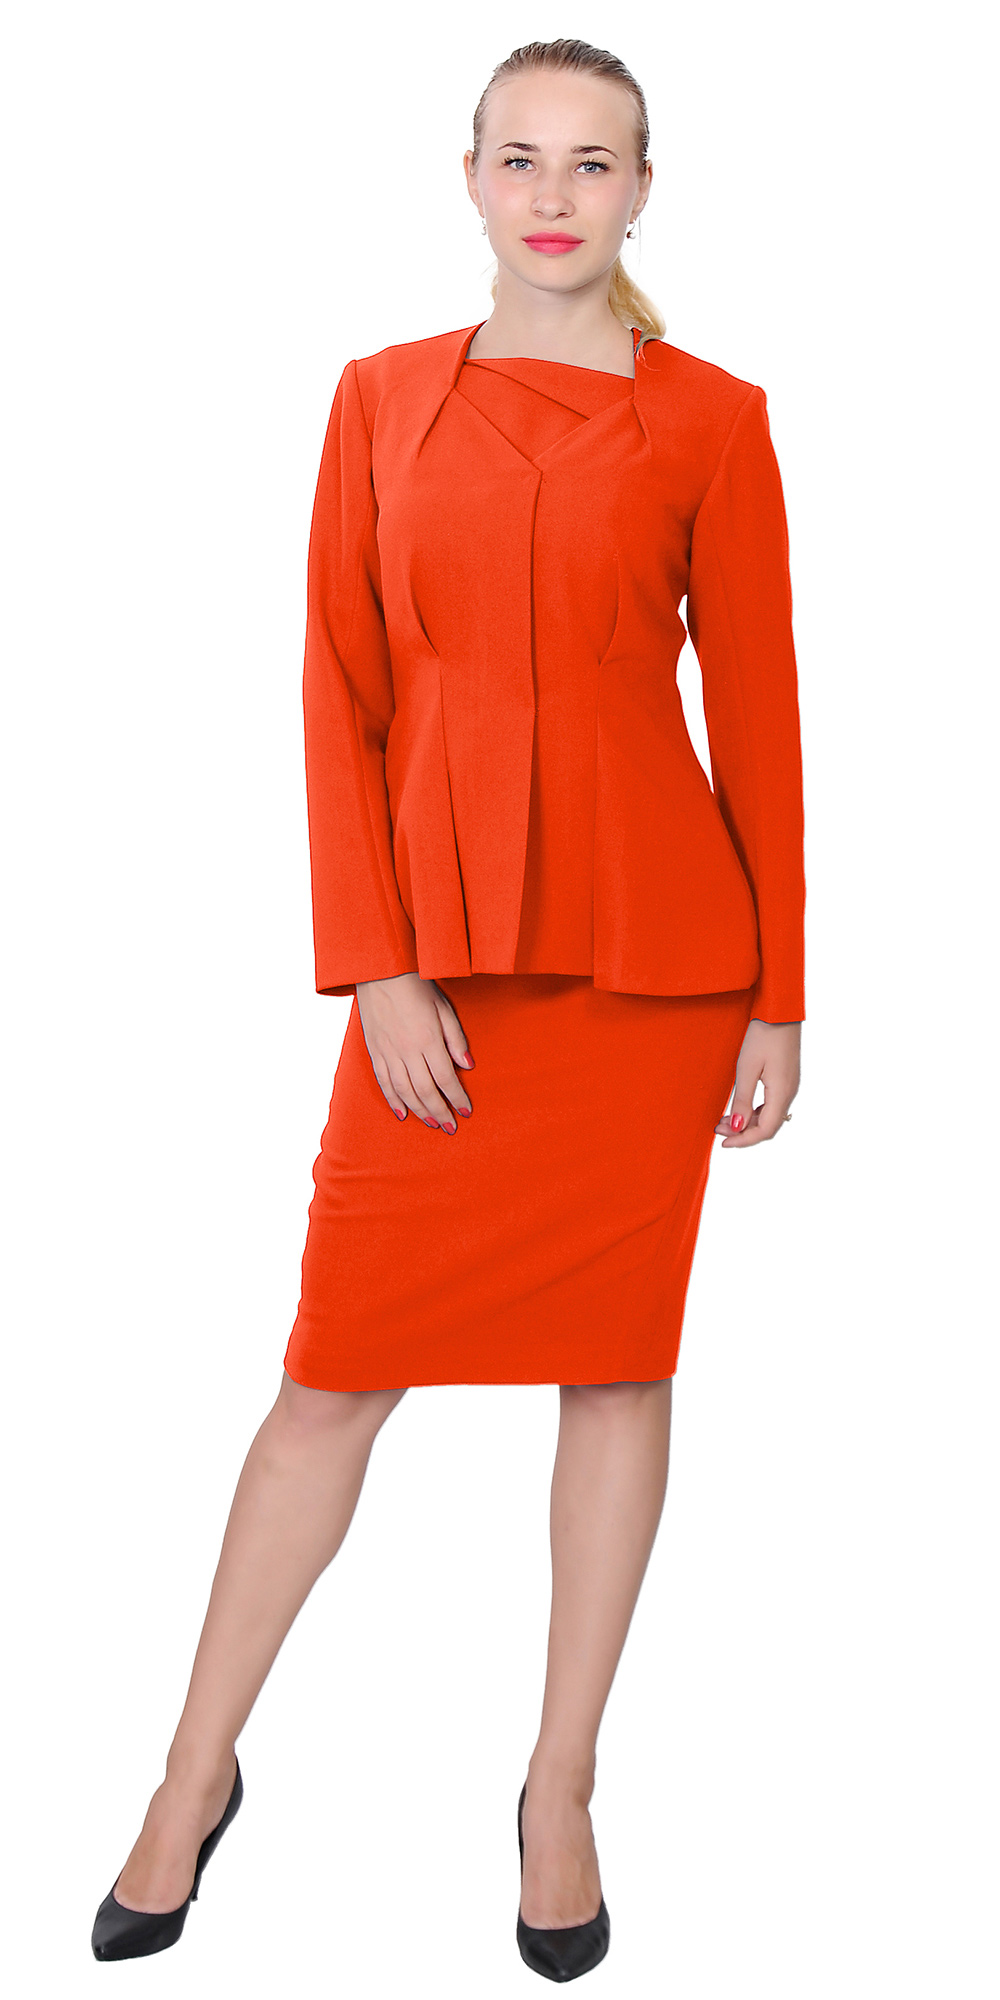 Womens Wear To Work Classy Elegant Lady Midi Dress Suit 4 Church